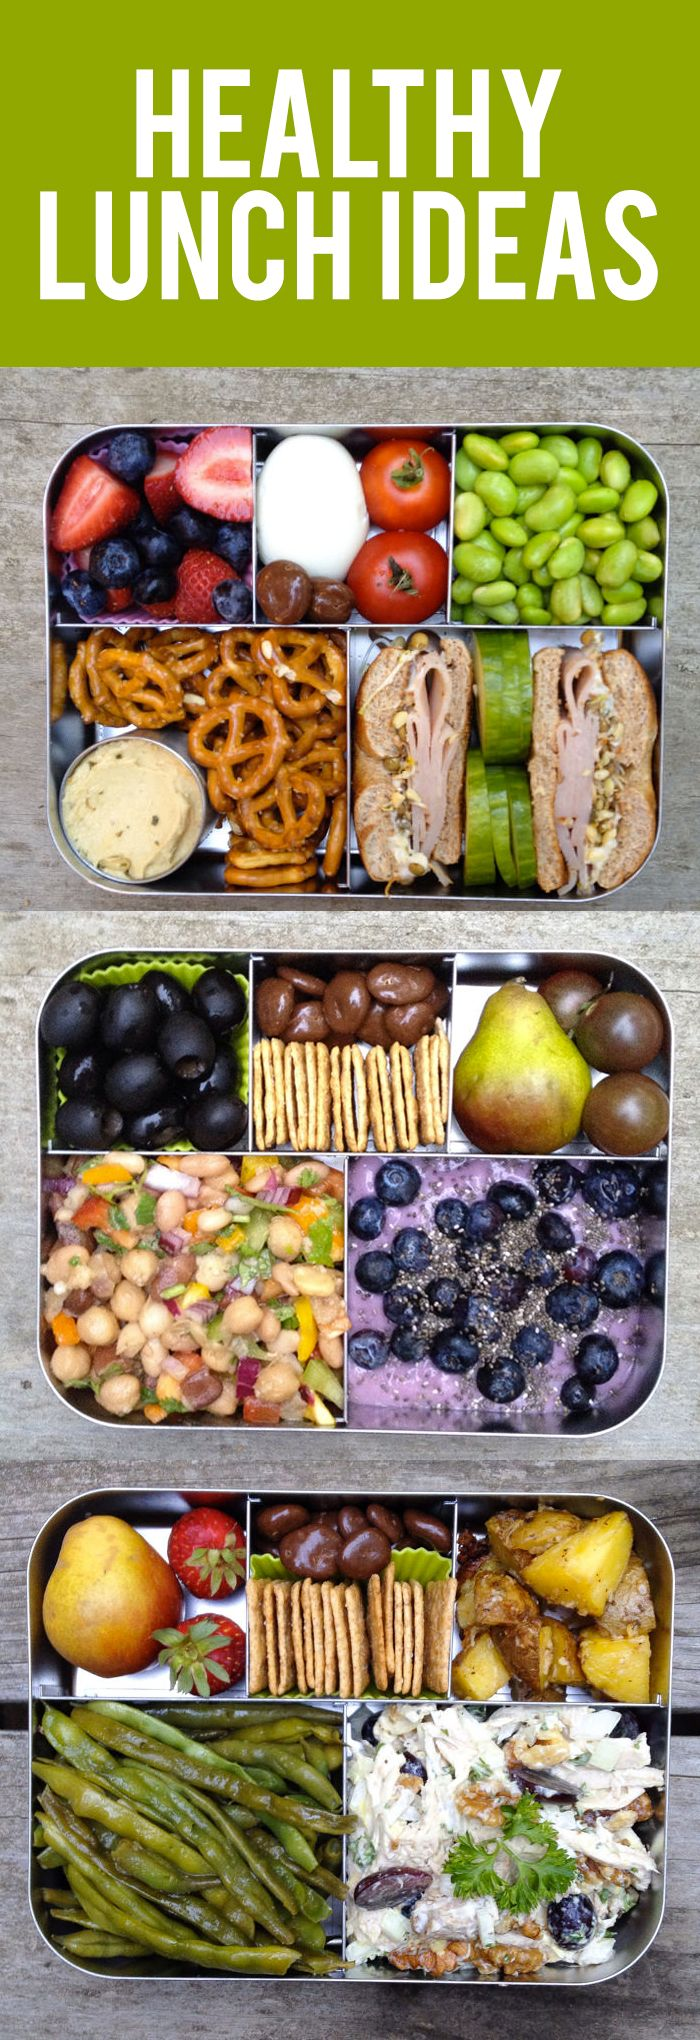 healthy, easy, and quick lunch ideas with photos.